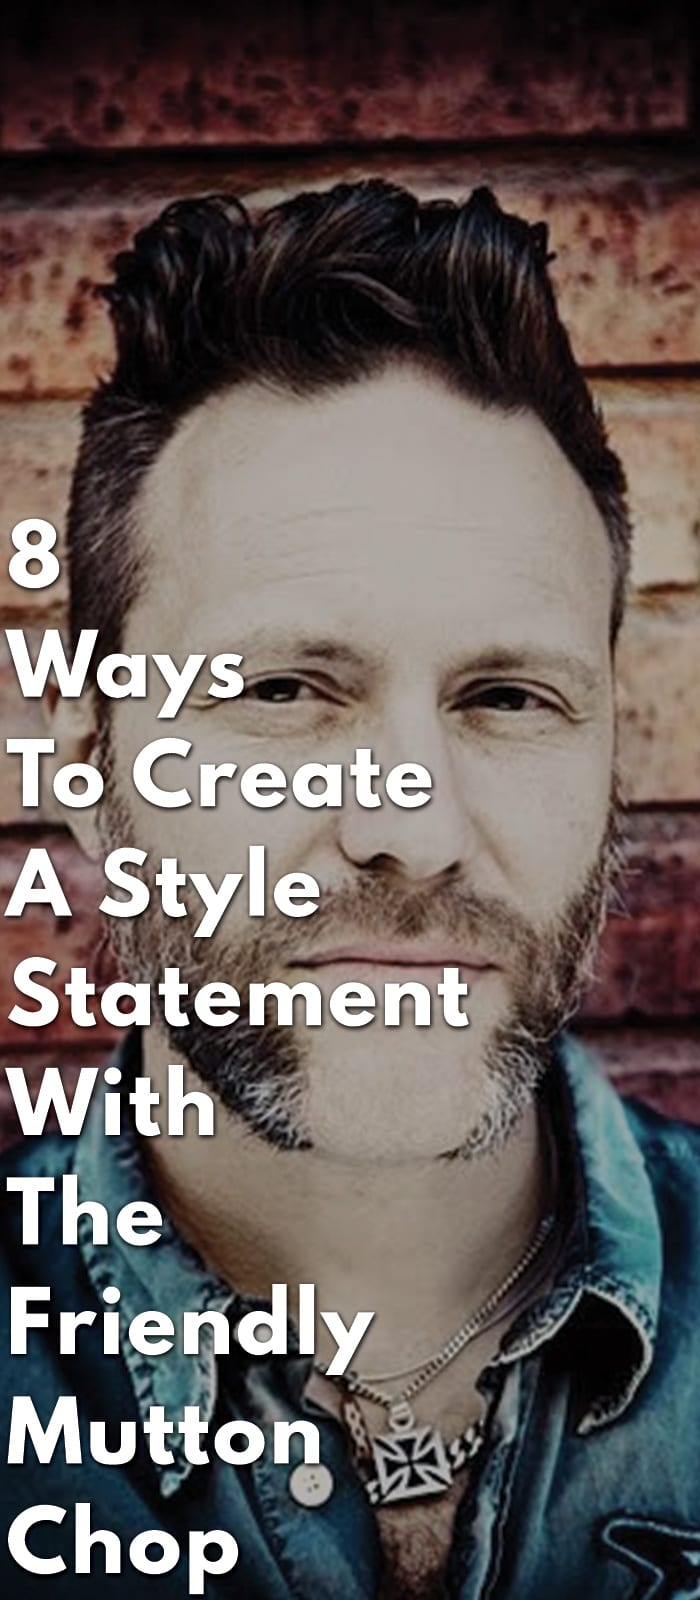 8-Ways-To-Create-A-Style-Statement-With-The-Friendly-Mutton-Chop-Beard.